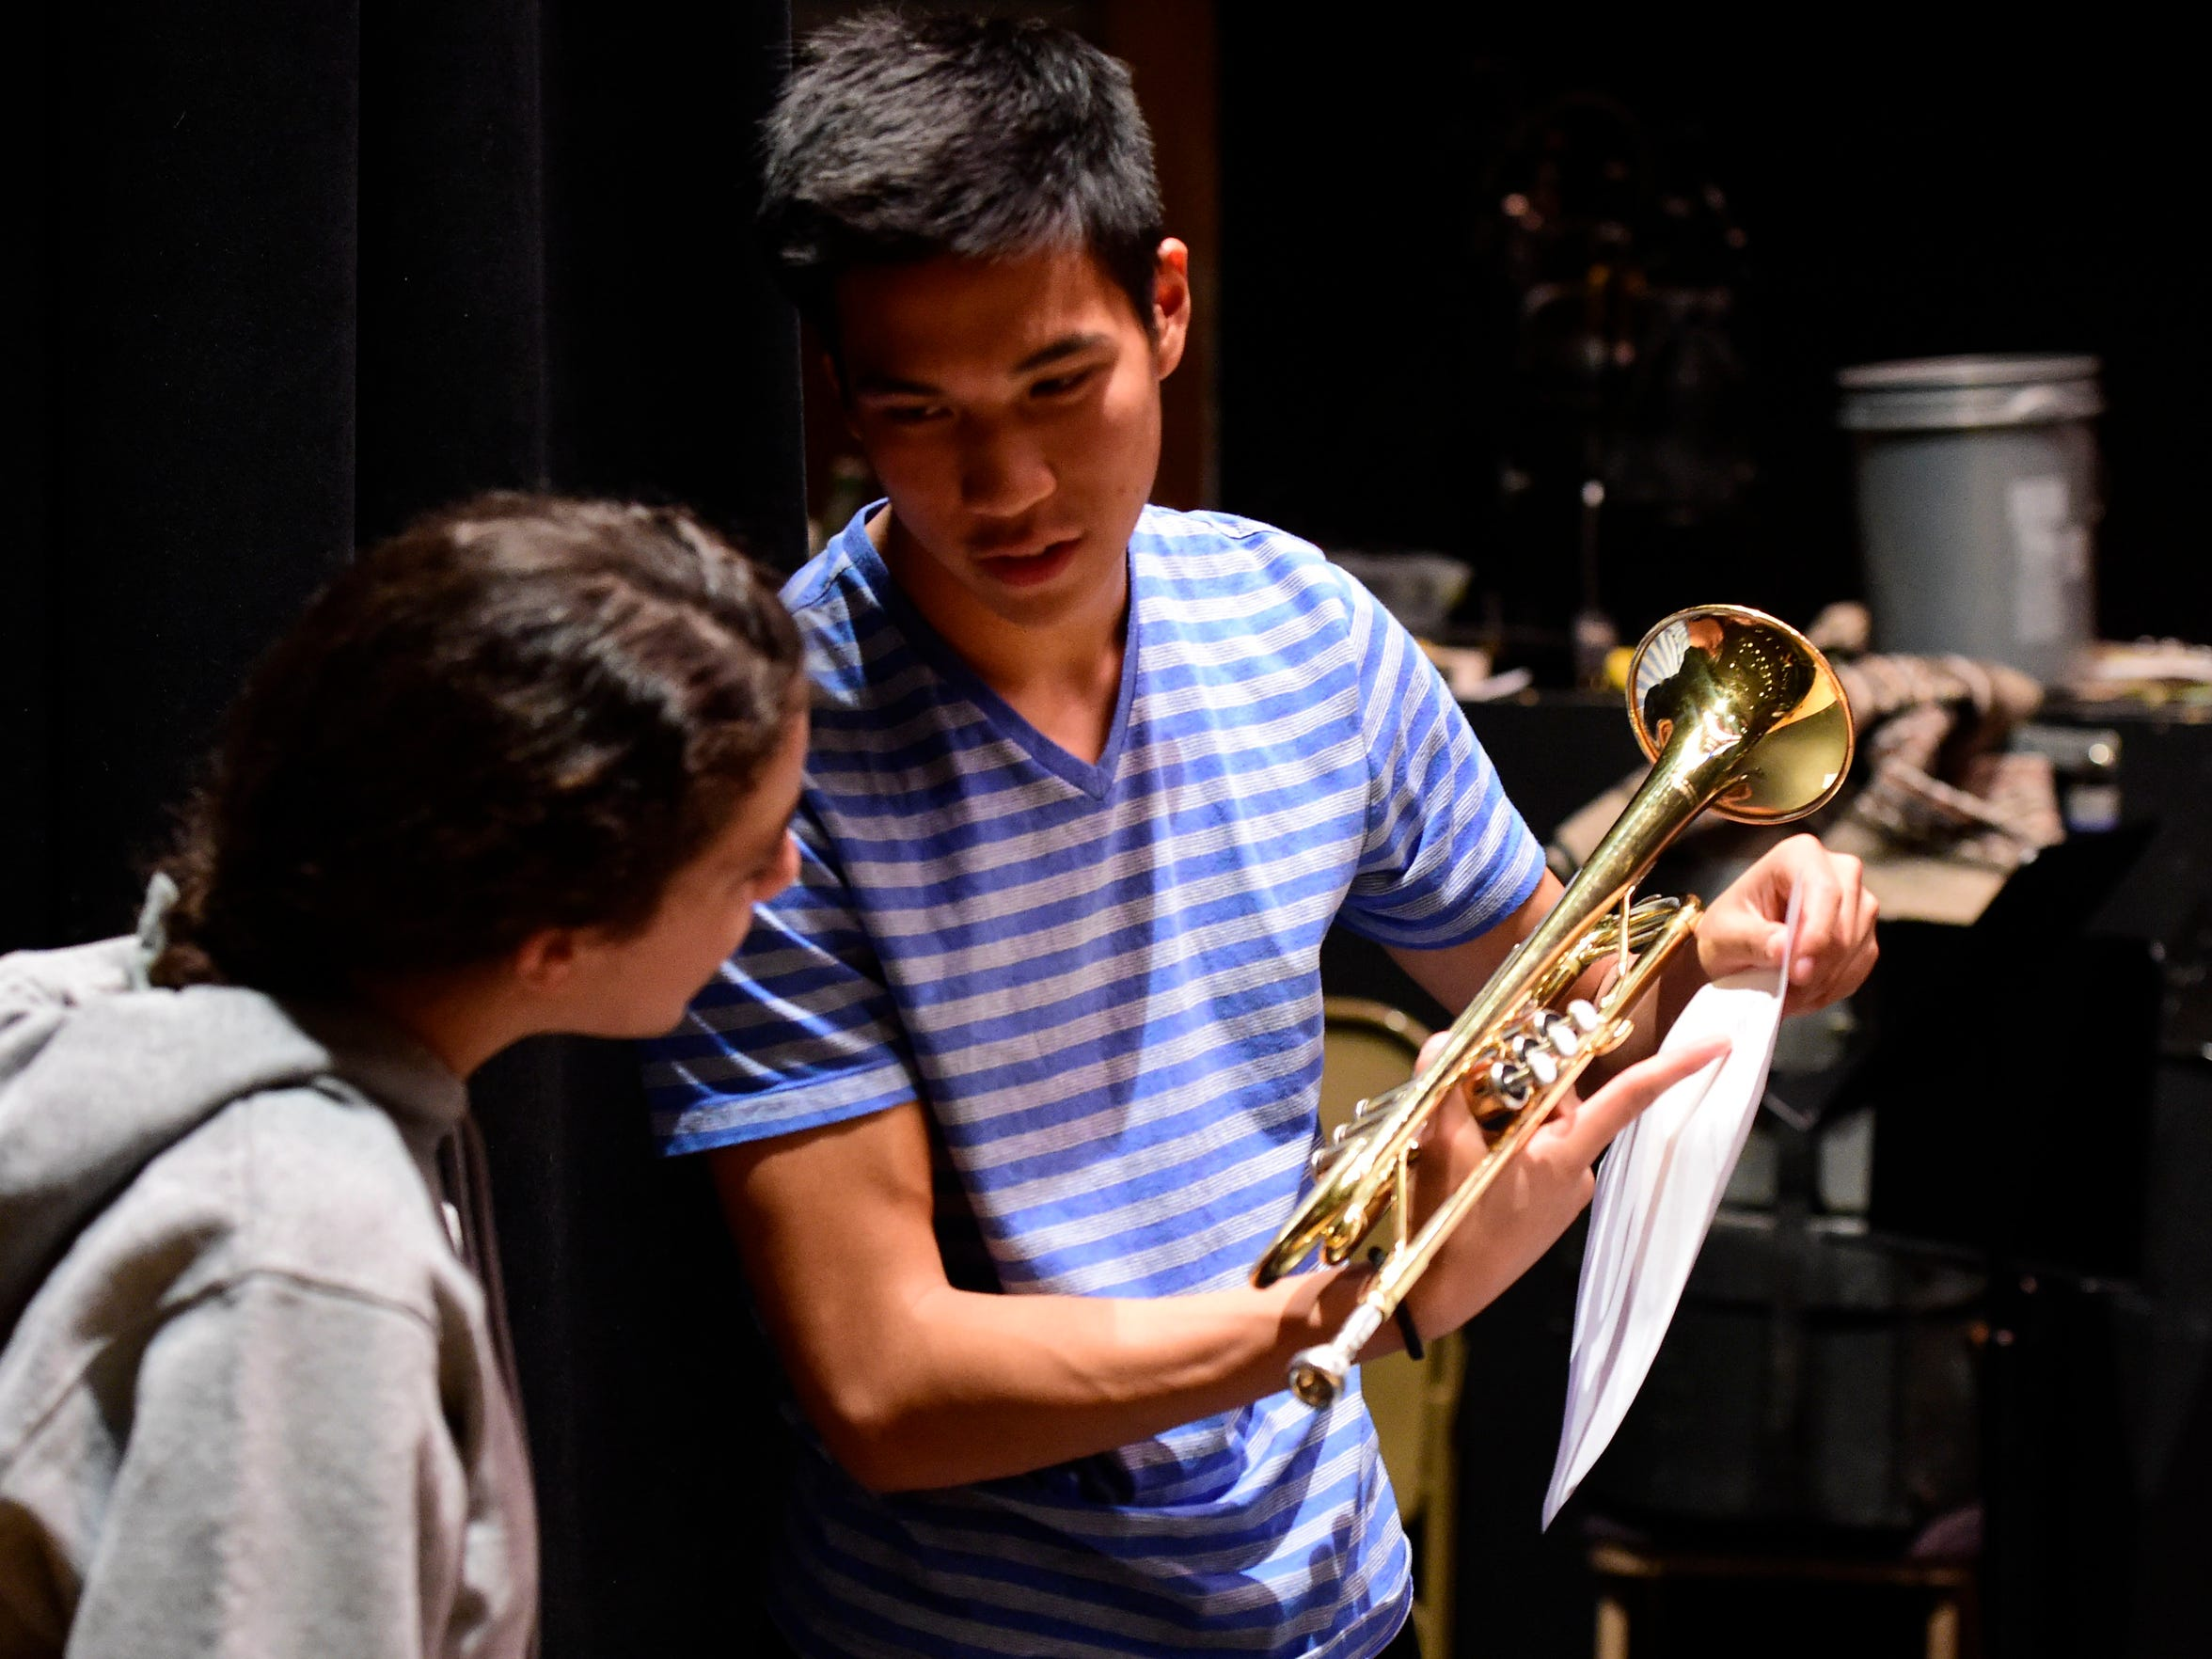 Warren Chan, of Vestal, goes over a music sheet with